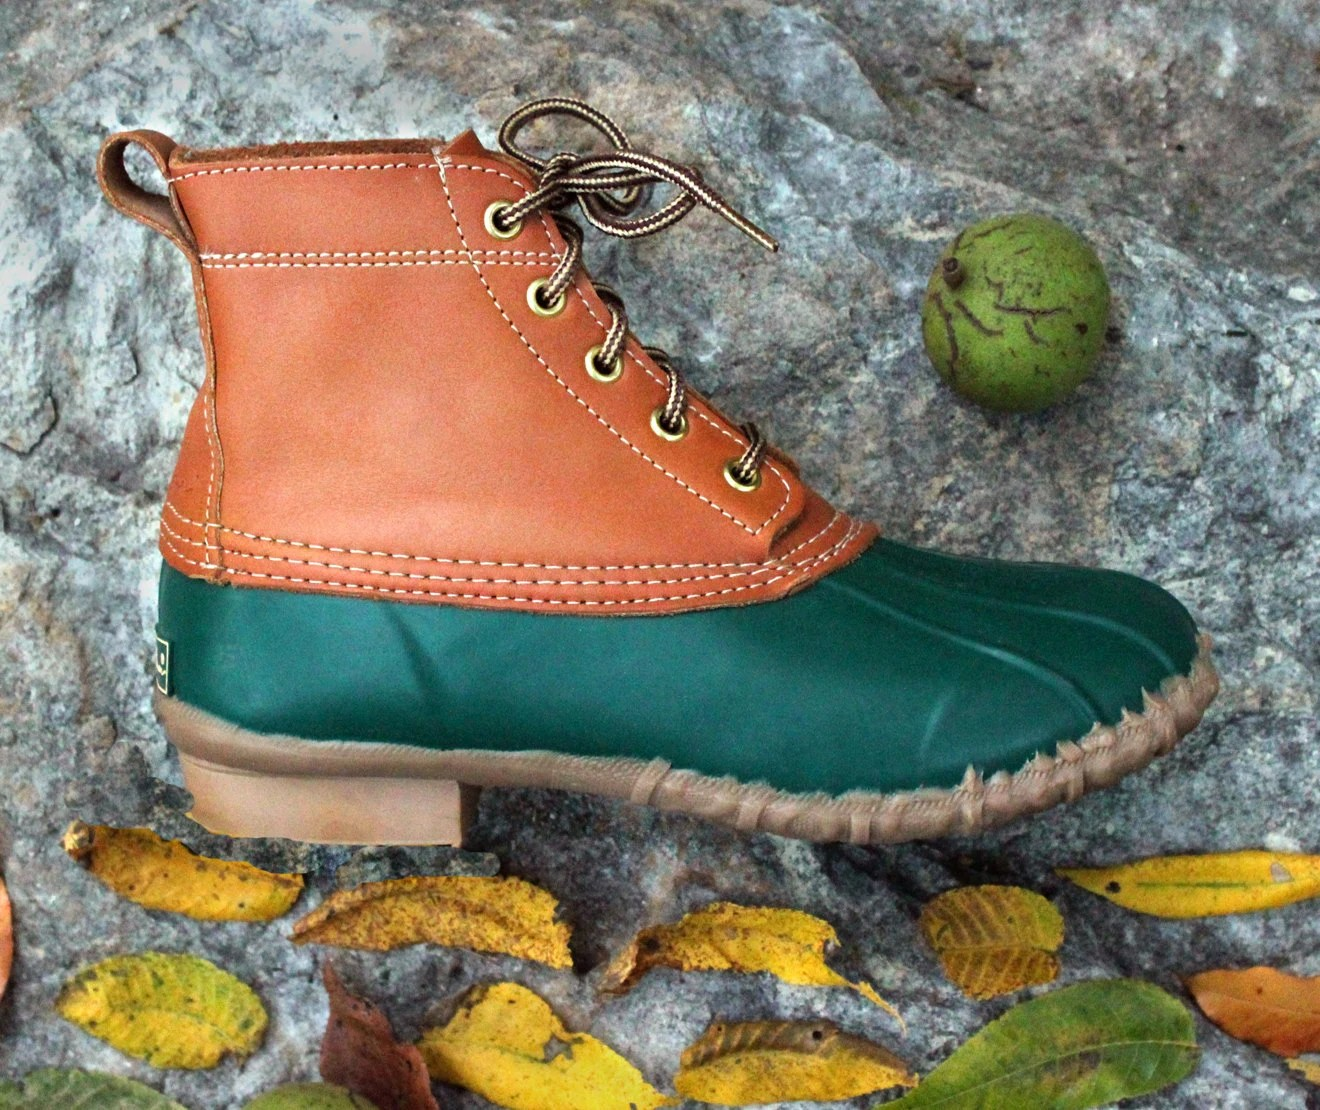 Vintage Eddie Bauer Duck Boots All Weather Rubber  Leather in